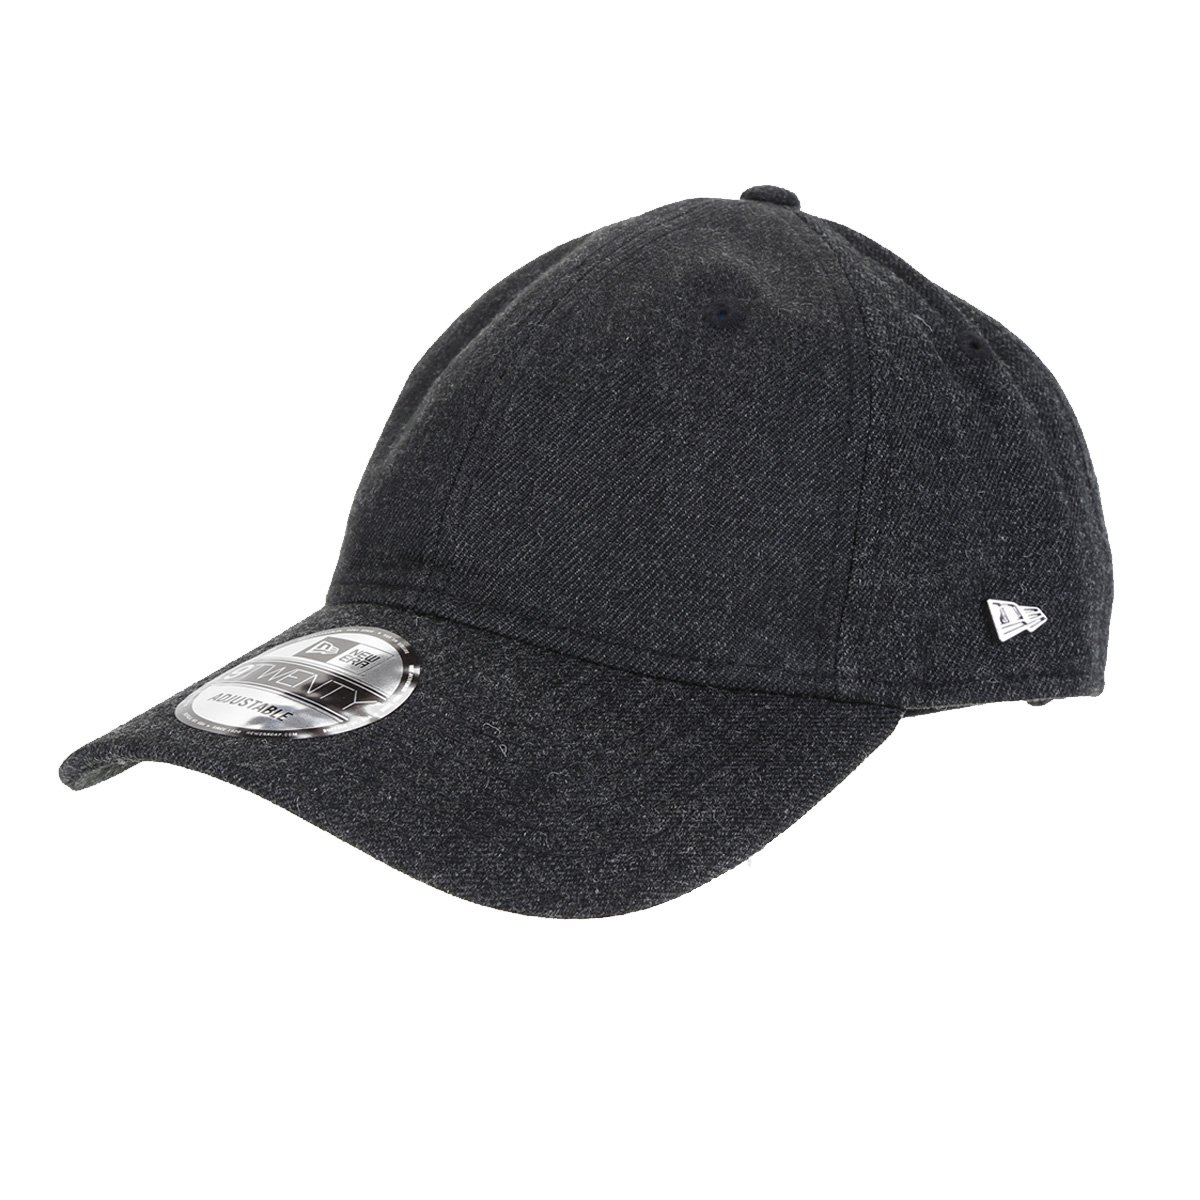 Boné New Era Aba Curva Strapback 920 Fashion CO Blk